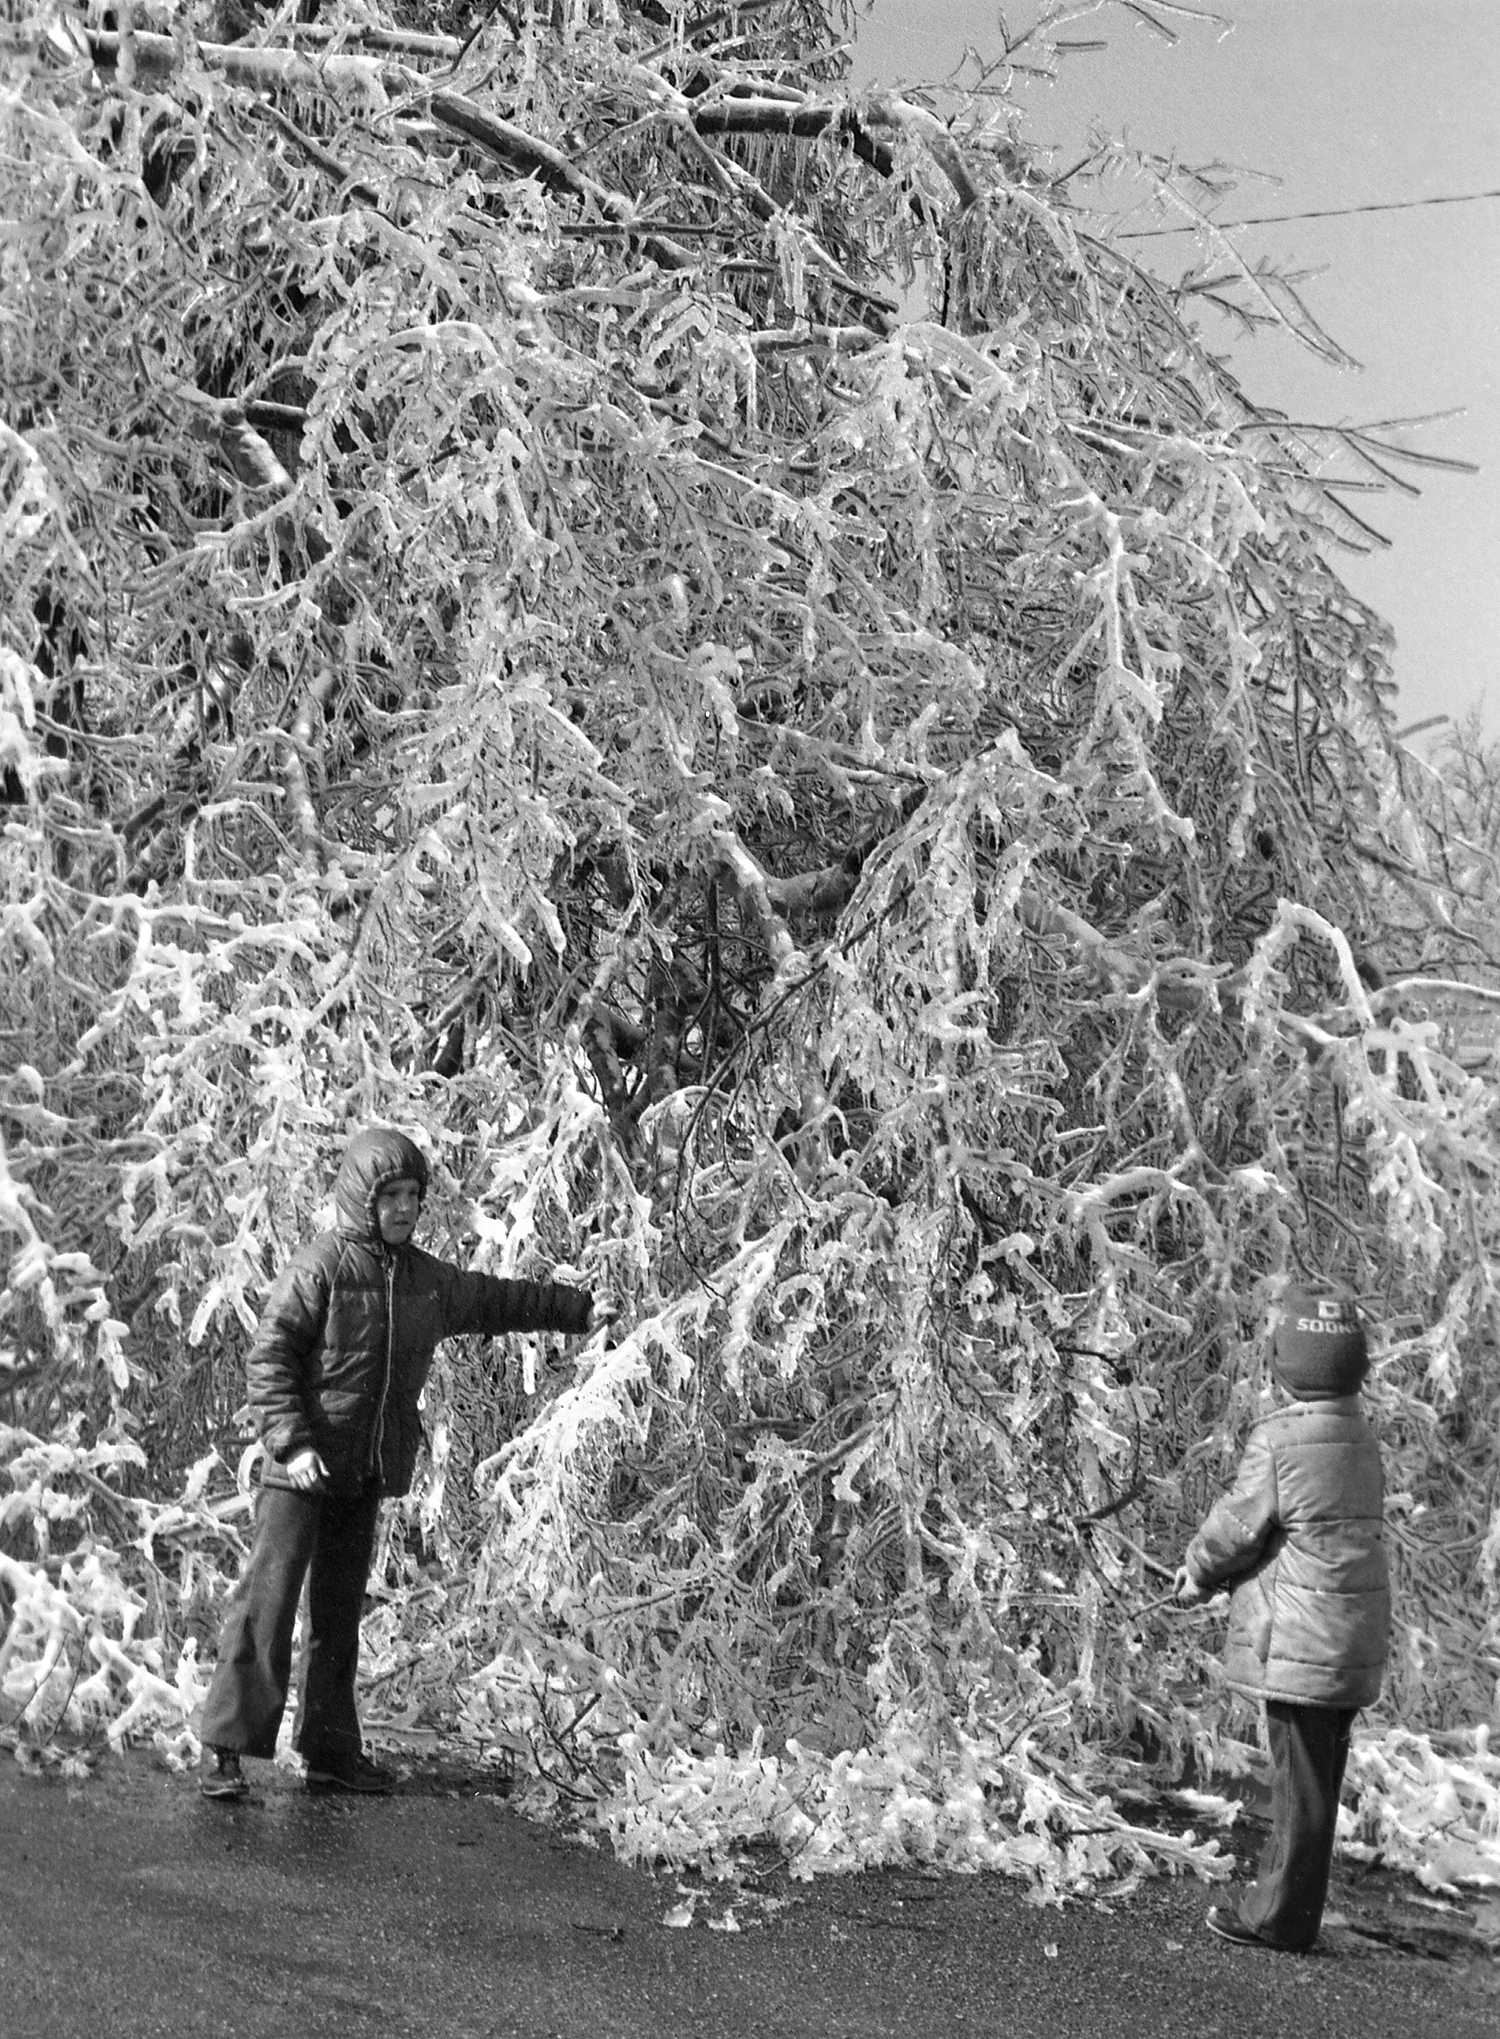 Kip and Kerry Allen knock ice from a tree in Iles Park, March 1978